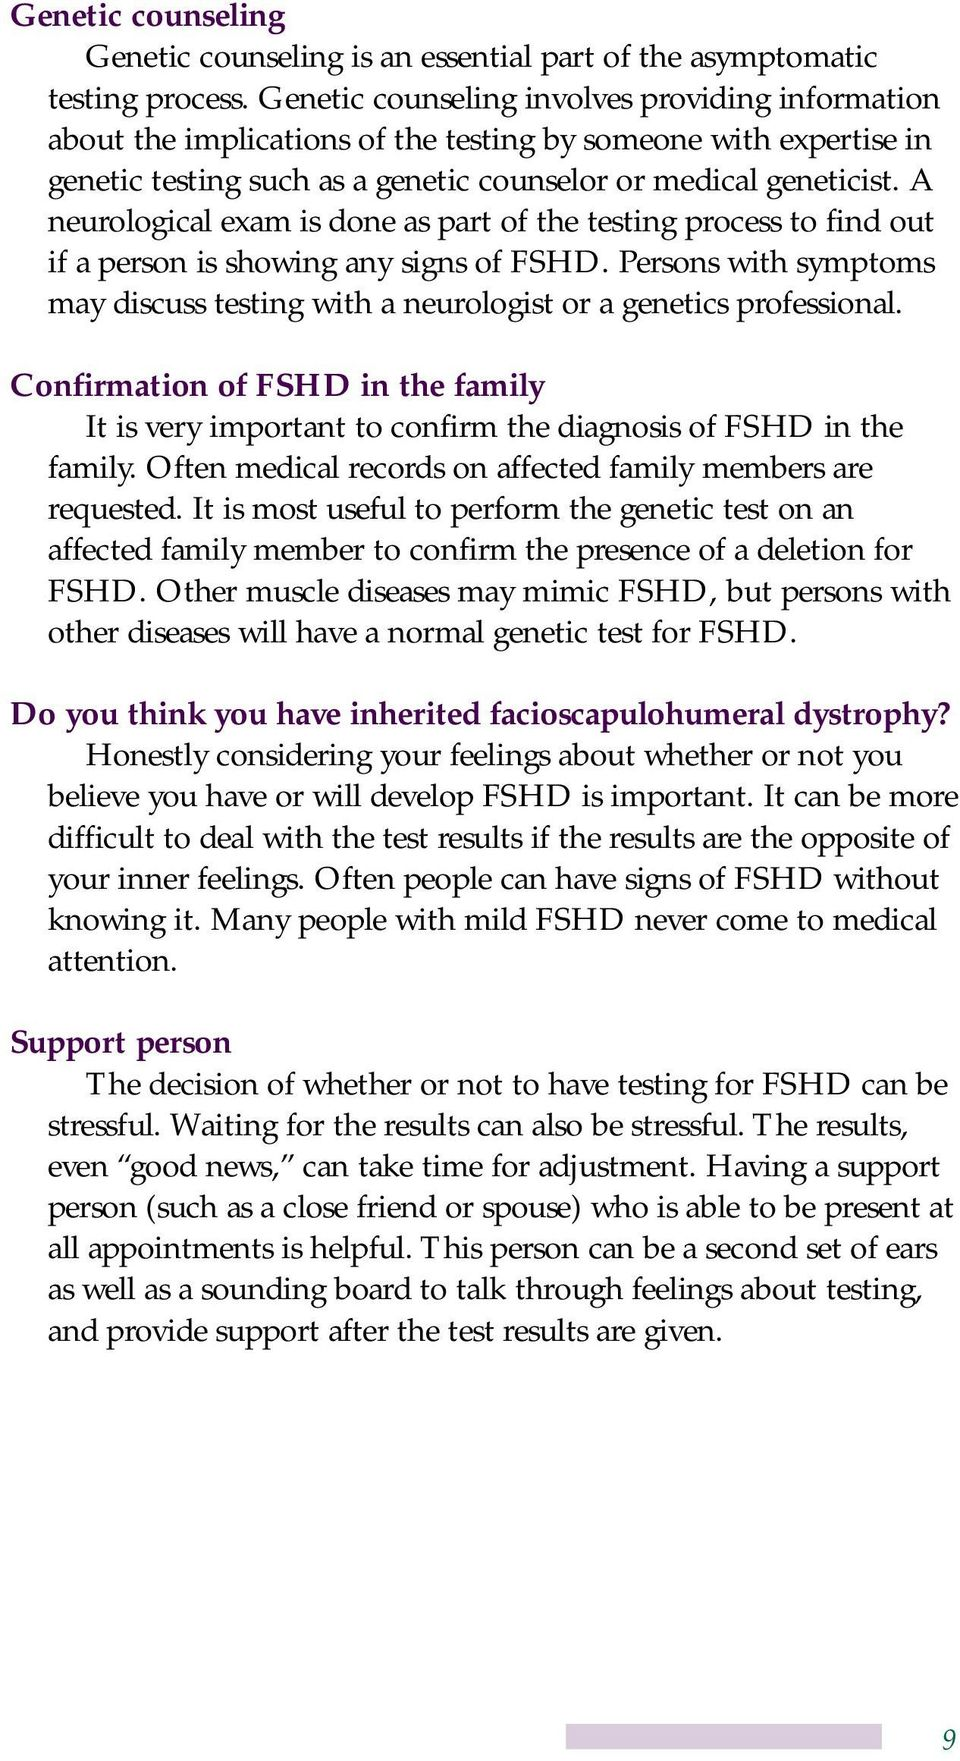 Facioscapulohumeral Muscular Dystrophy: Making an Informed